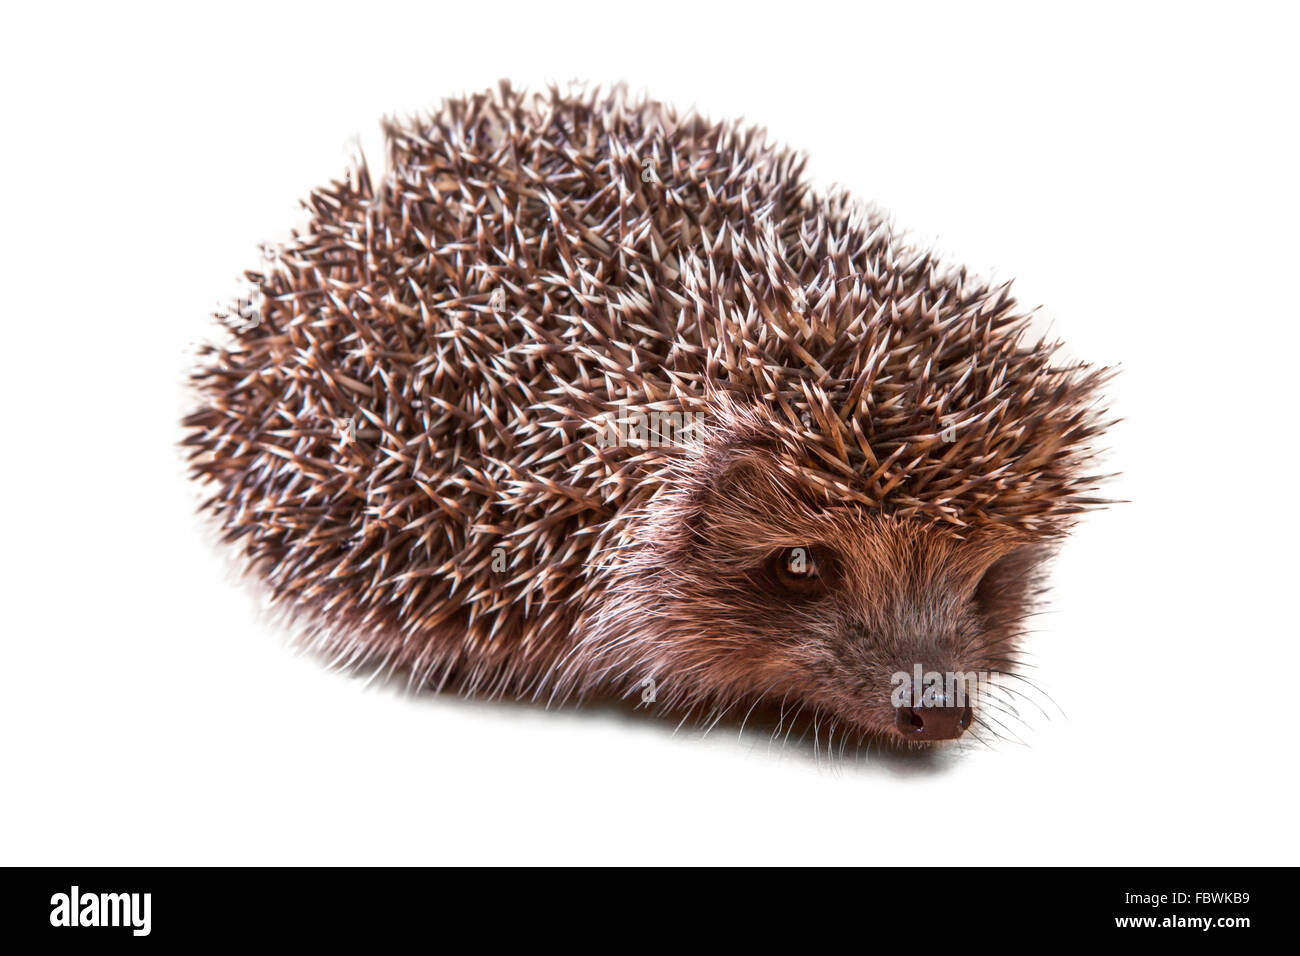 Cute young hedgehog - porcupine on white - Stock Image